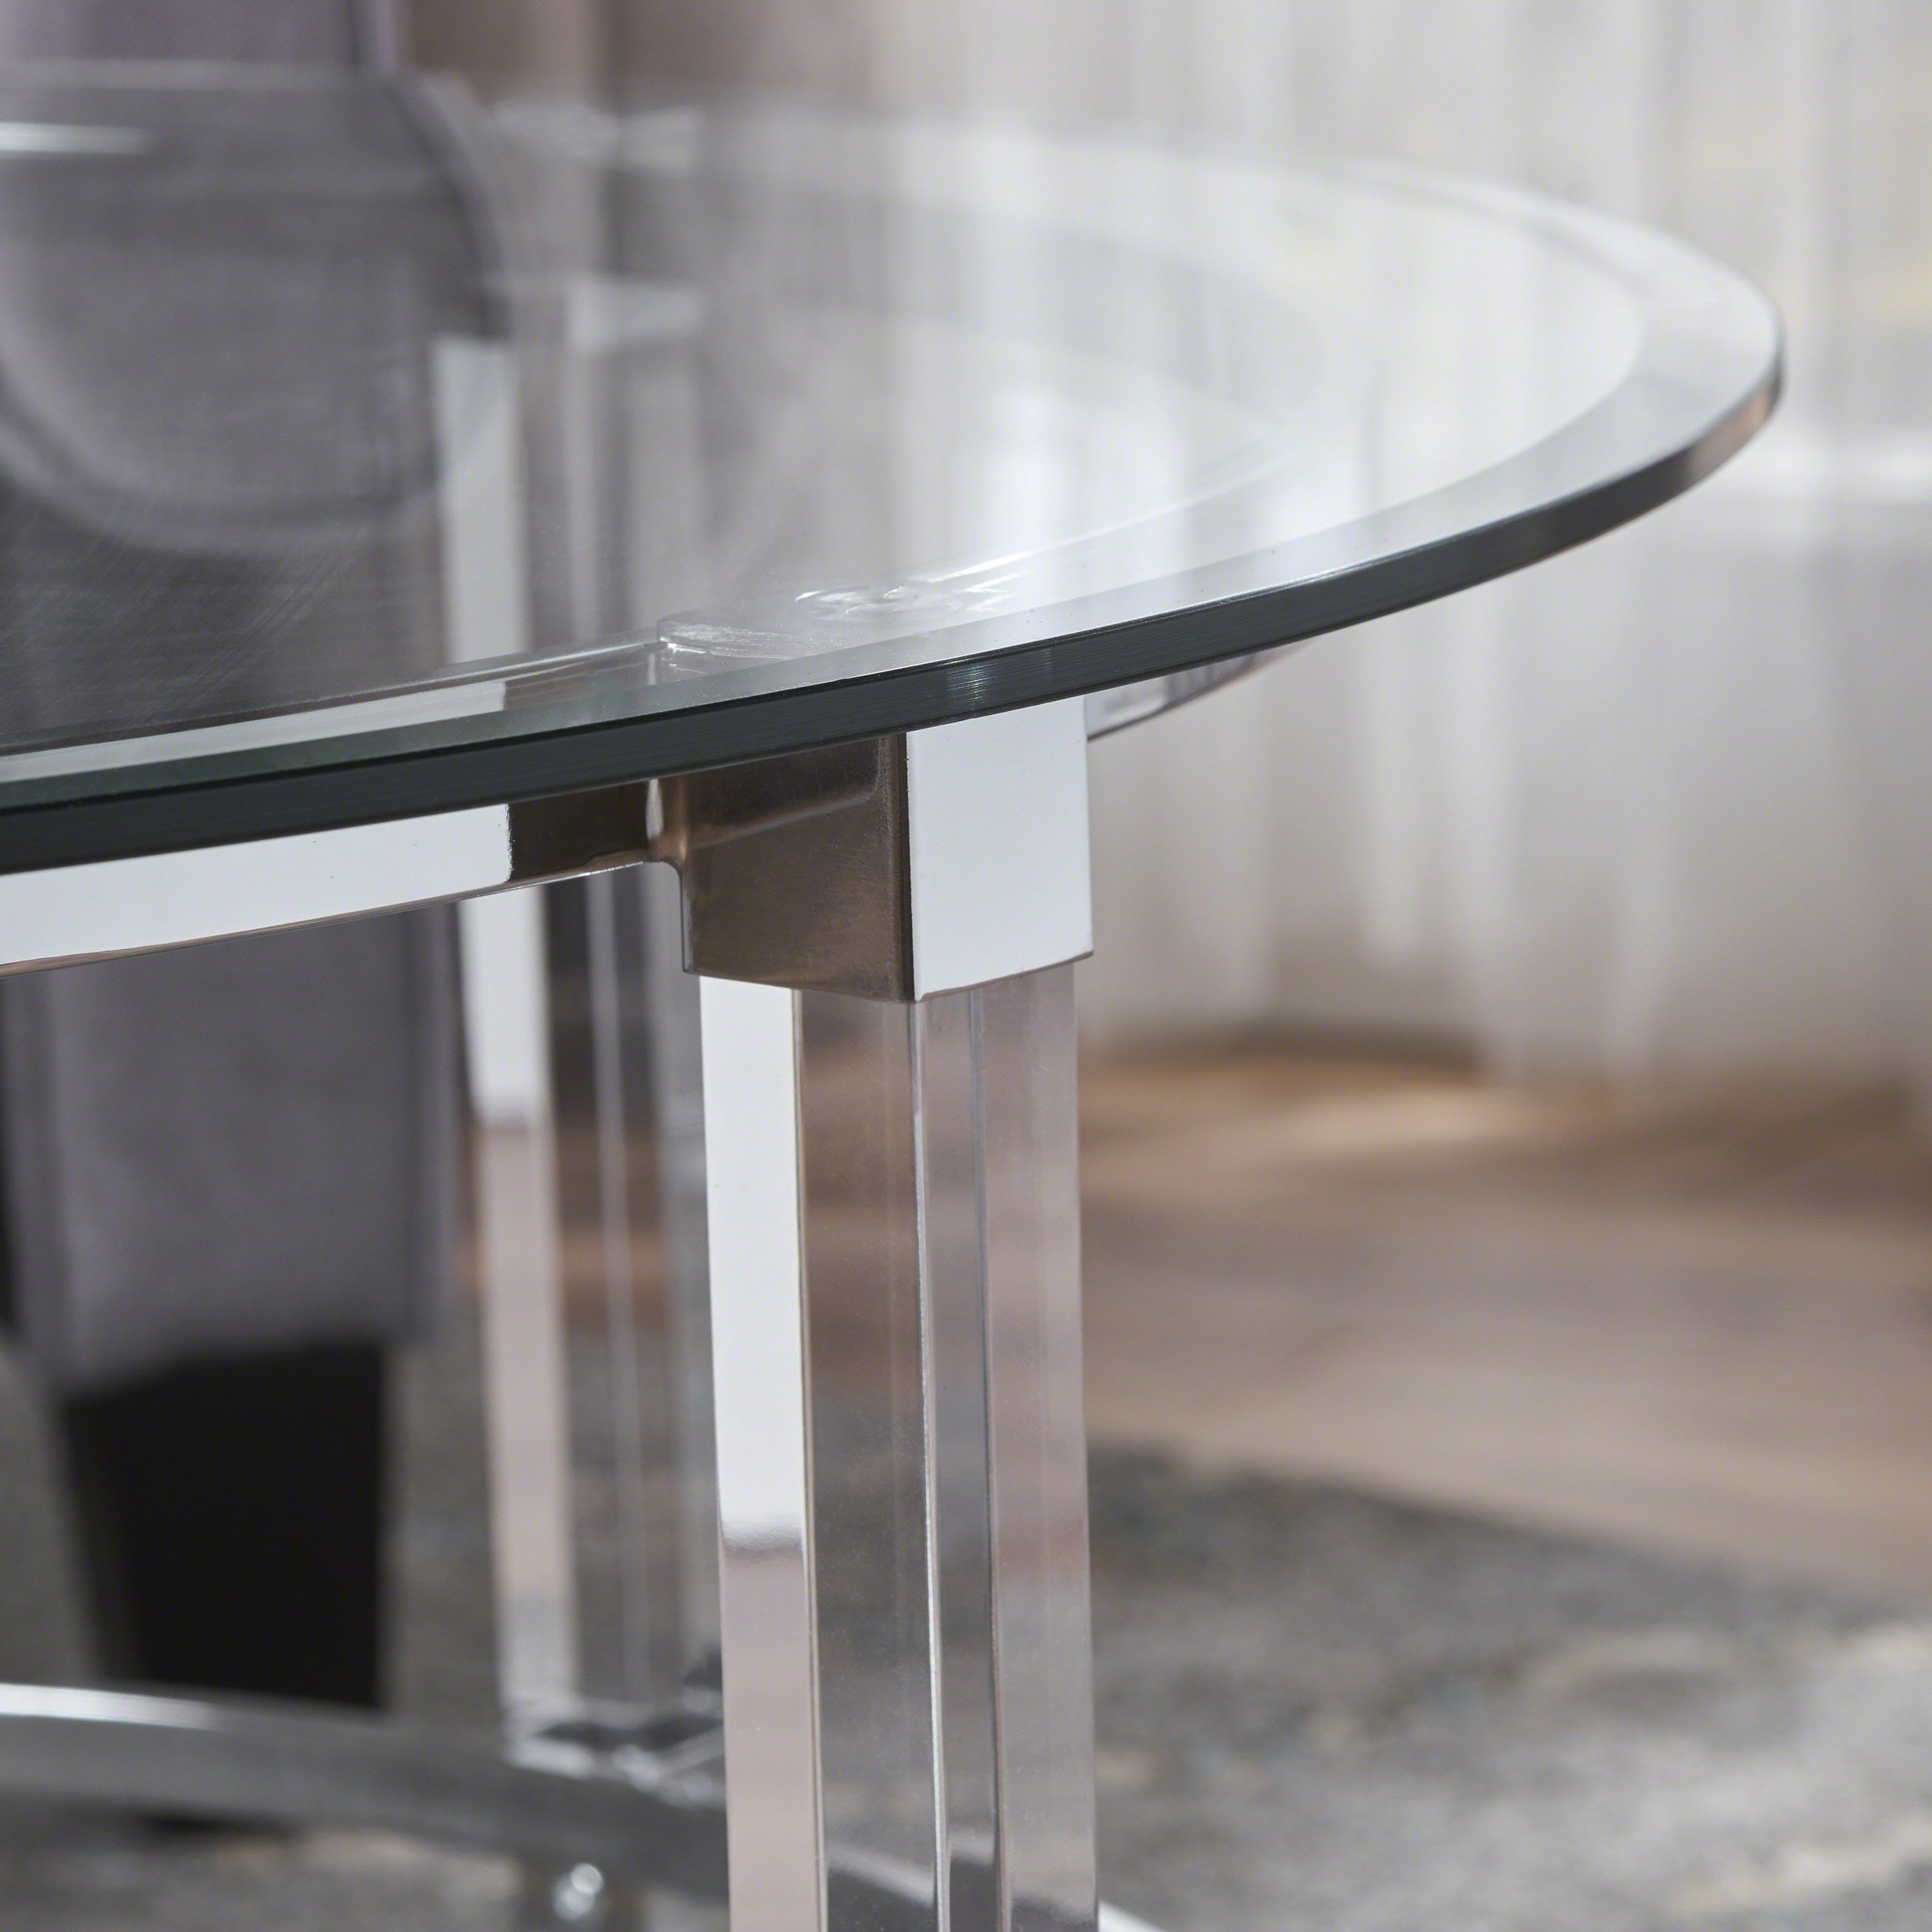 Christopher Knight Home Elowen Round Glass Coffee Table By Intended For Newest Elowen Round Glass Coffee Tables (View 5 of 20)